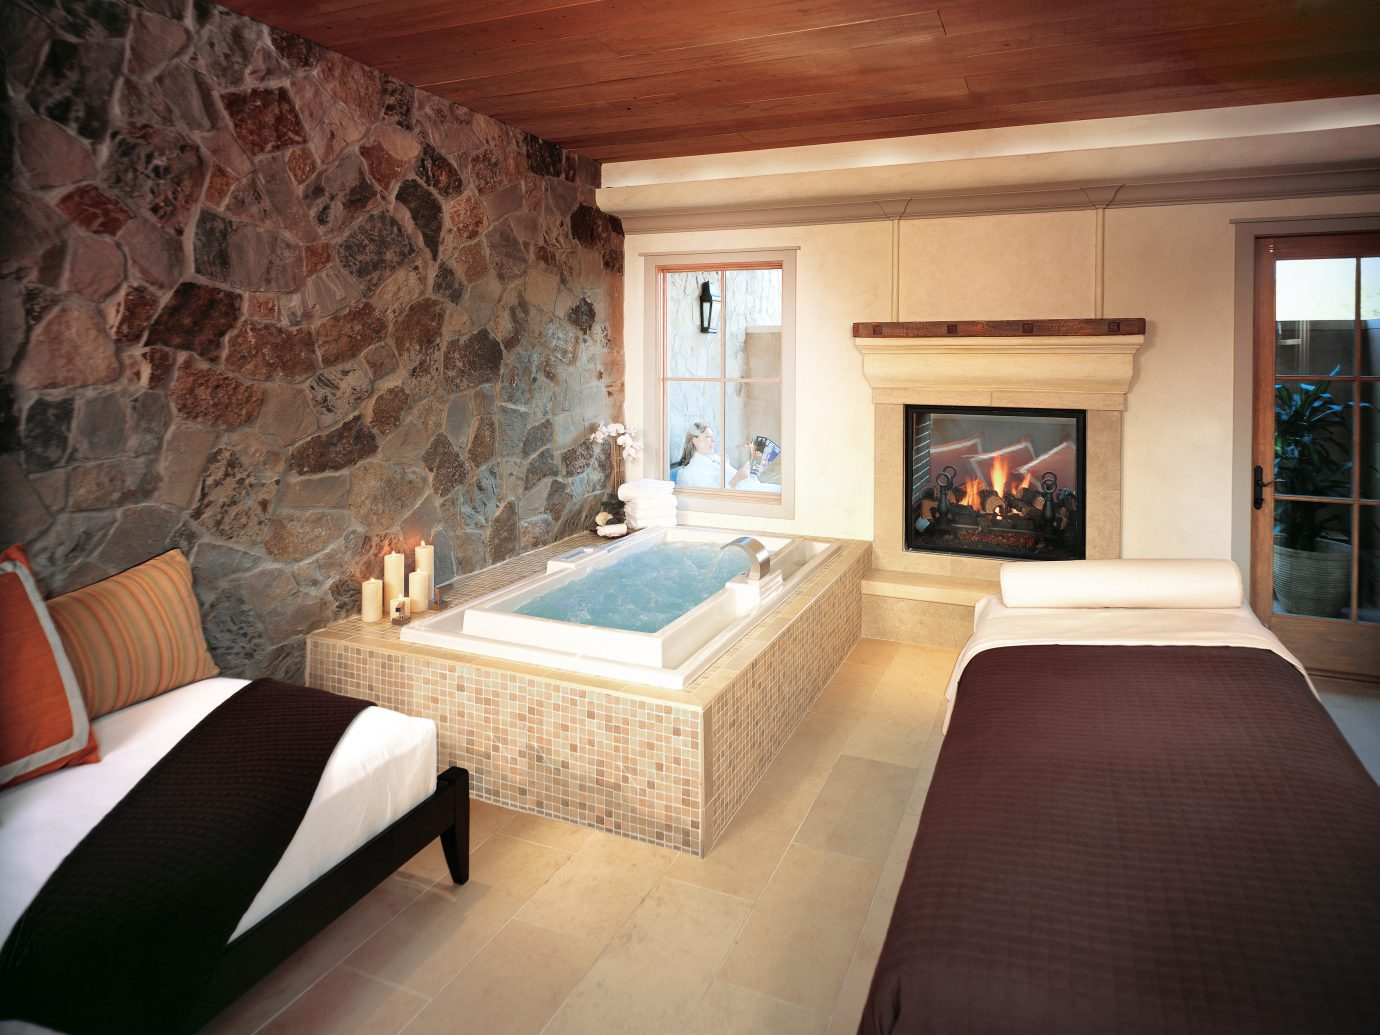 Bath Hotels Luxury Romance Spa Spa Retreats Trip Ideas indoor sofa room wall floor Living ceiling property house Fireplace estate living room home hardwood interior design furniture cottage wood Suite Design real estate stone wood flooring mansion decorated